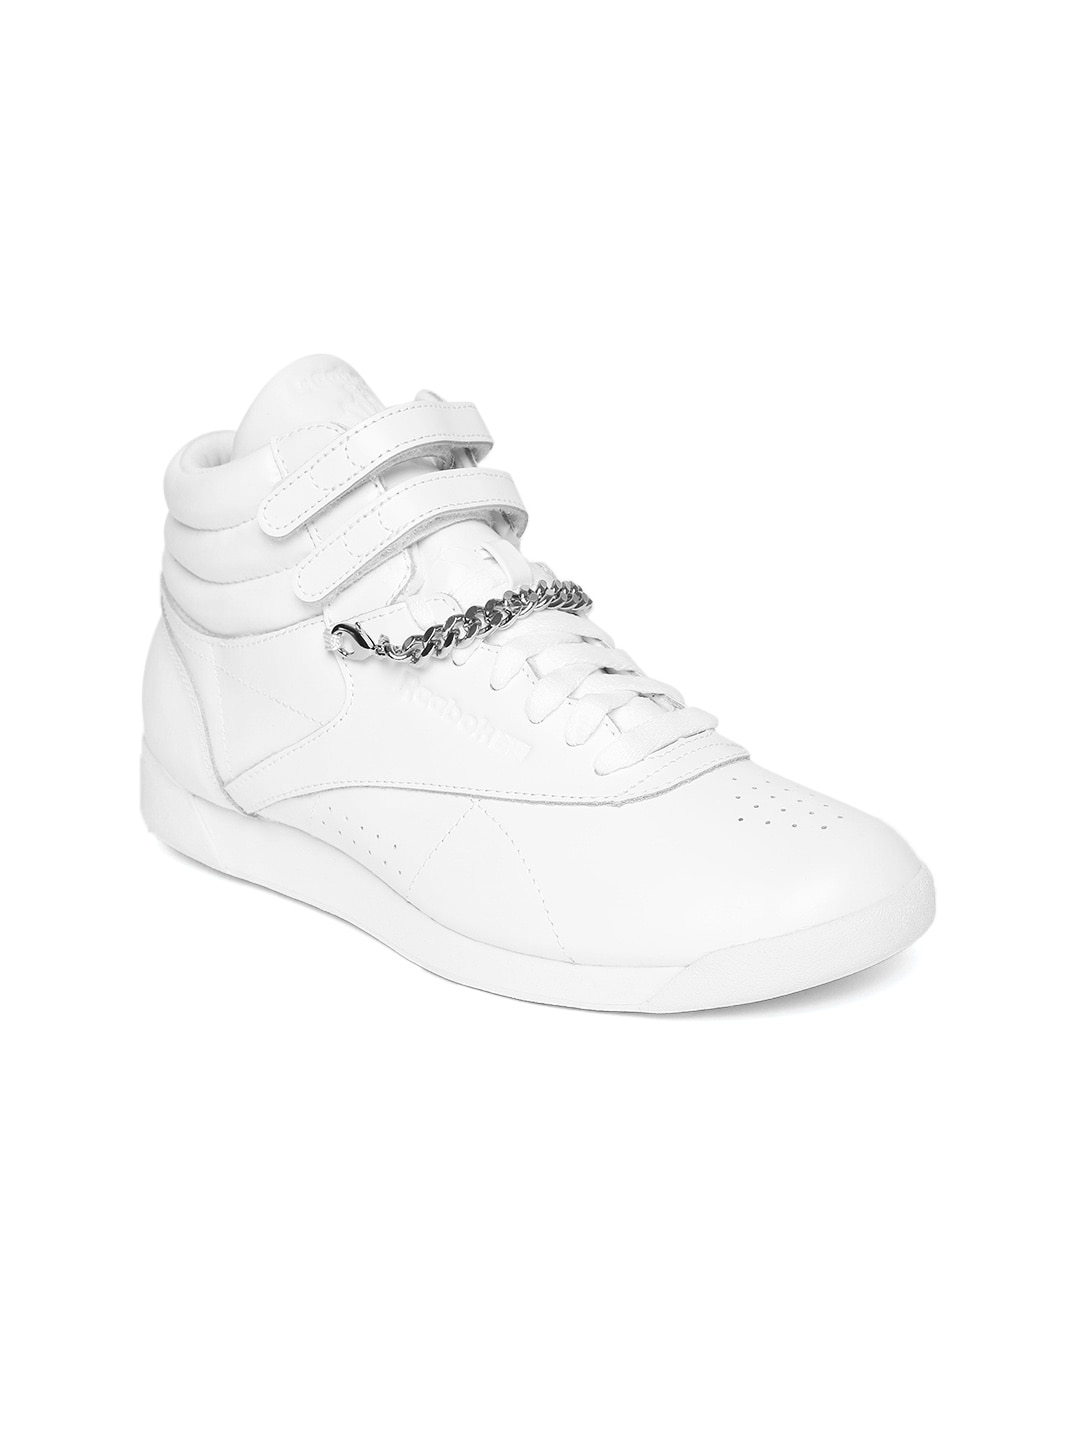 ac9b76d15b2 Reebok Casual Footwear - Buy Reebok Casual Footwear Online in India